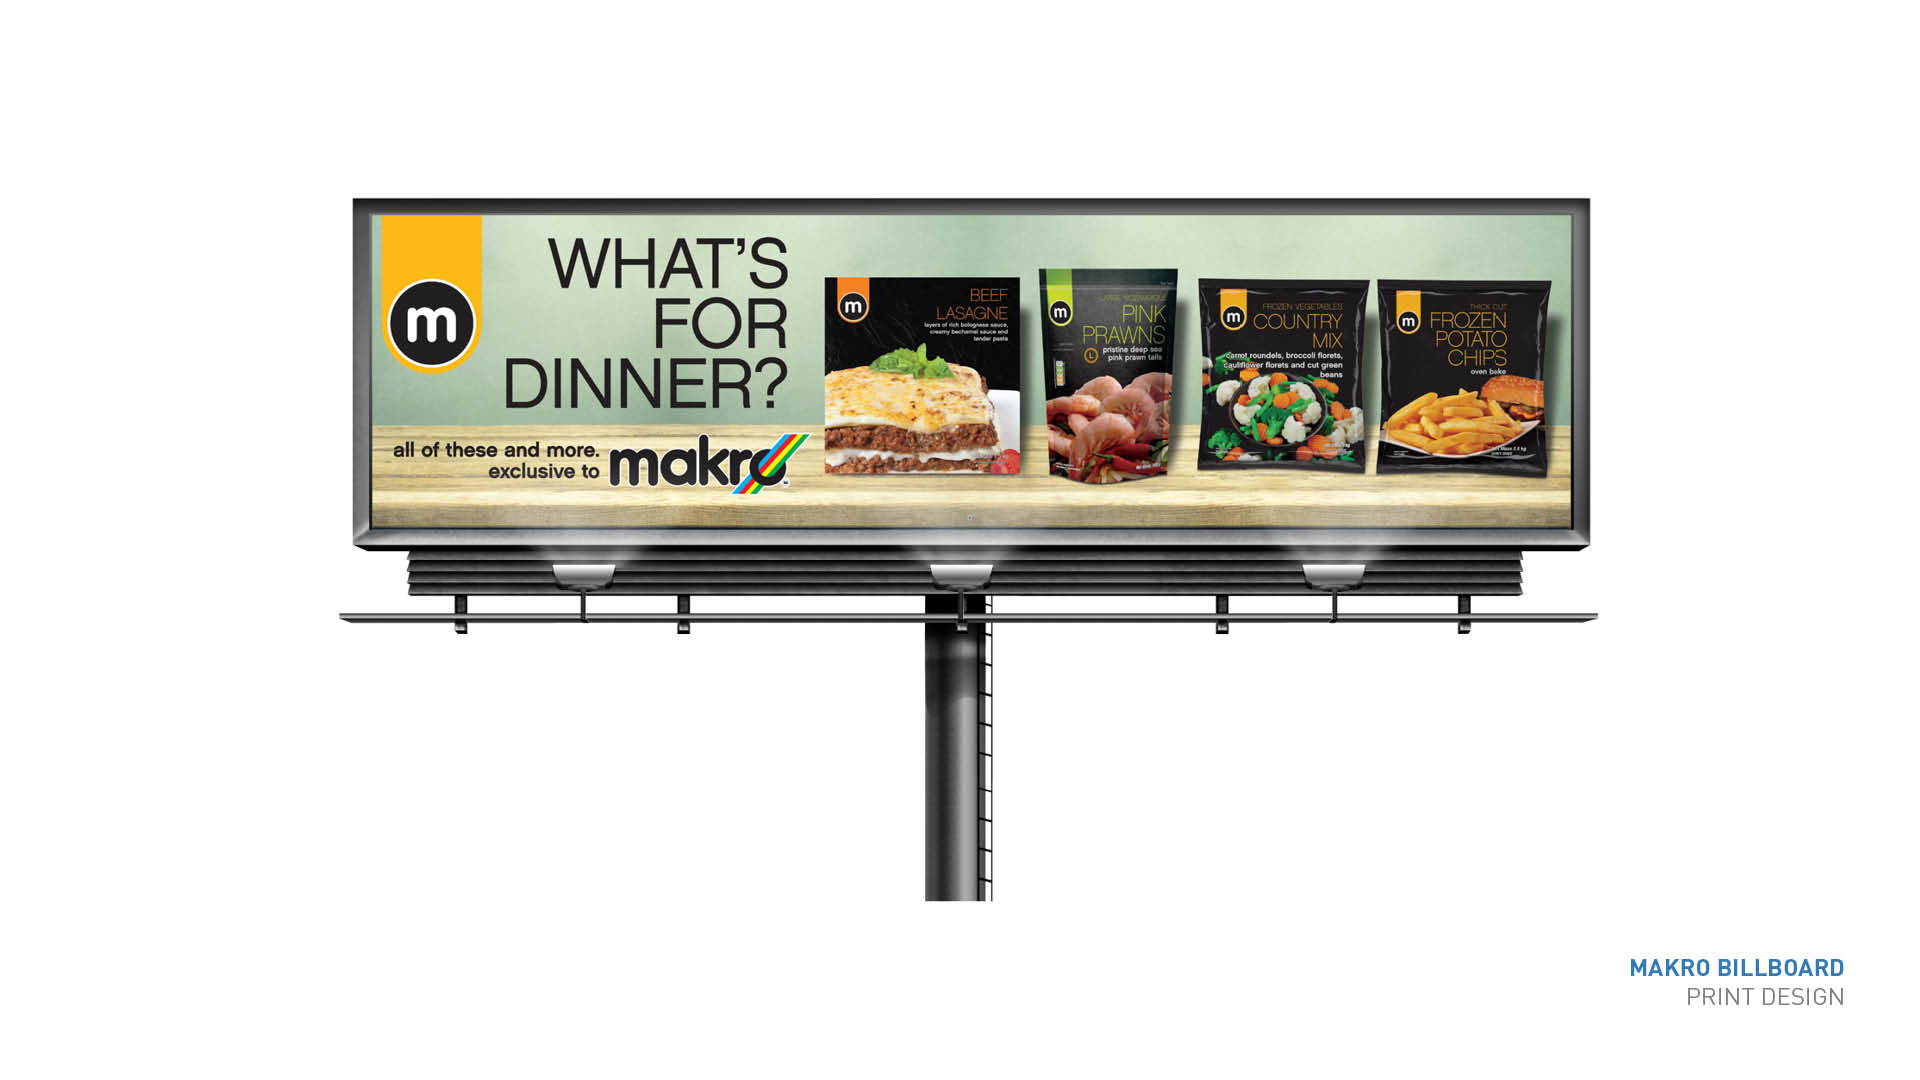 What's for dinner billboard